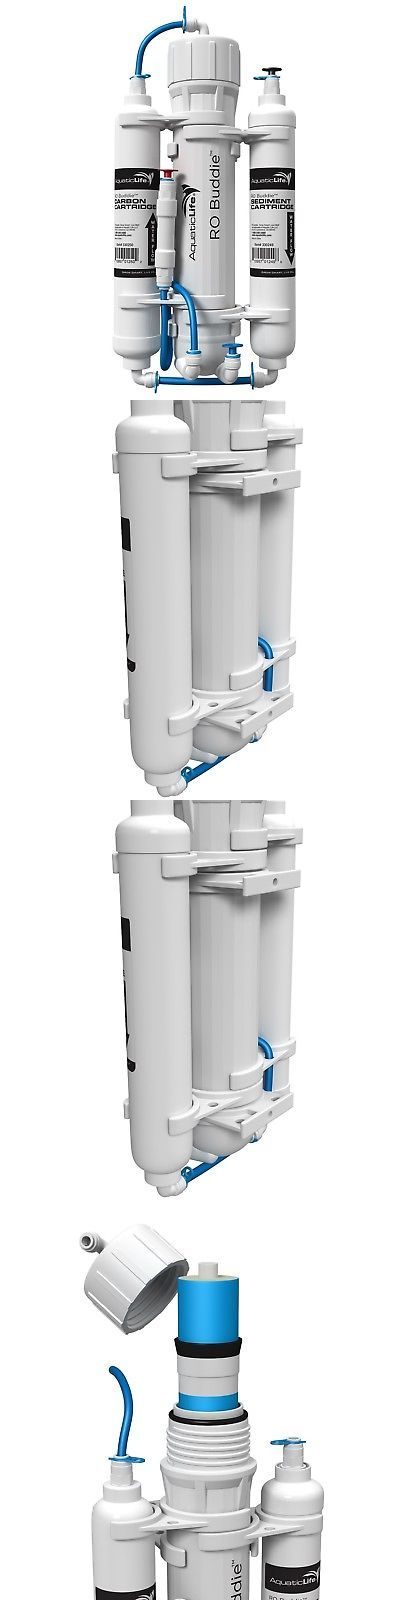 Reverse Osmosis and Deionization 77658: Aquatic Life Ro Buddie Reverse Osmosis Systems 50-Gallon Three Stage -> BUY IT NOW ONLY: $64.41 on eBay!